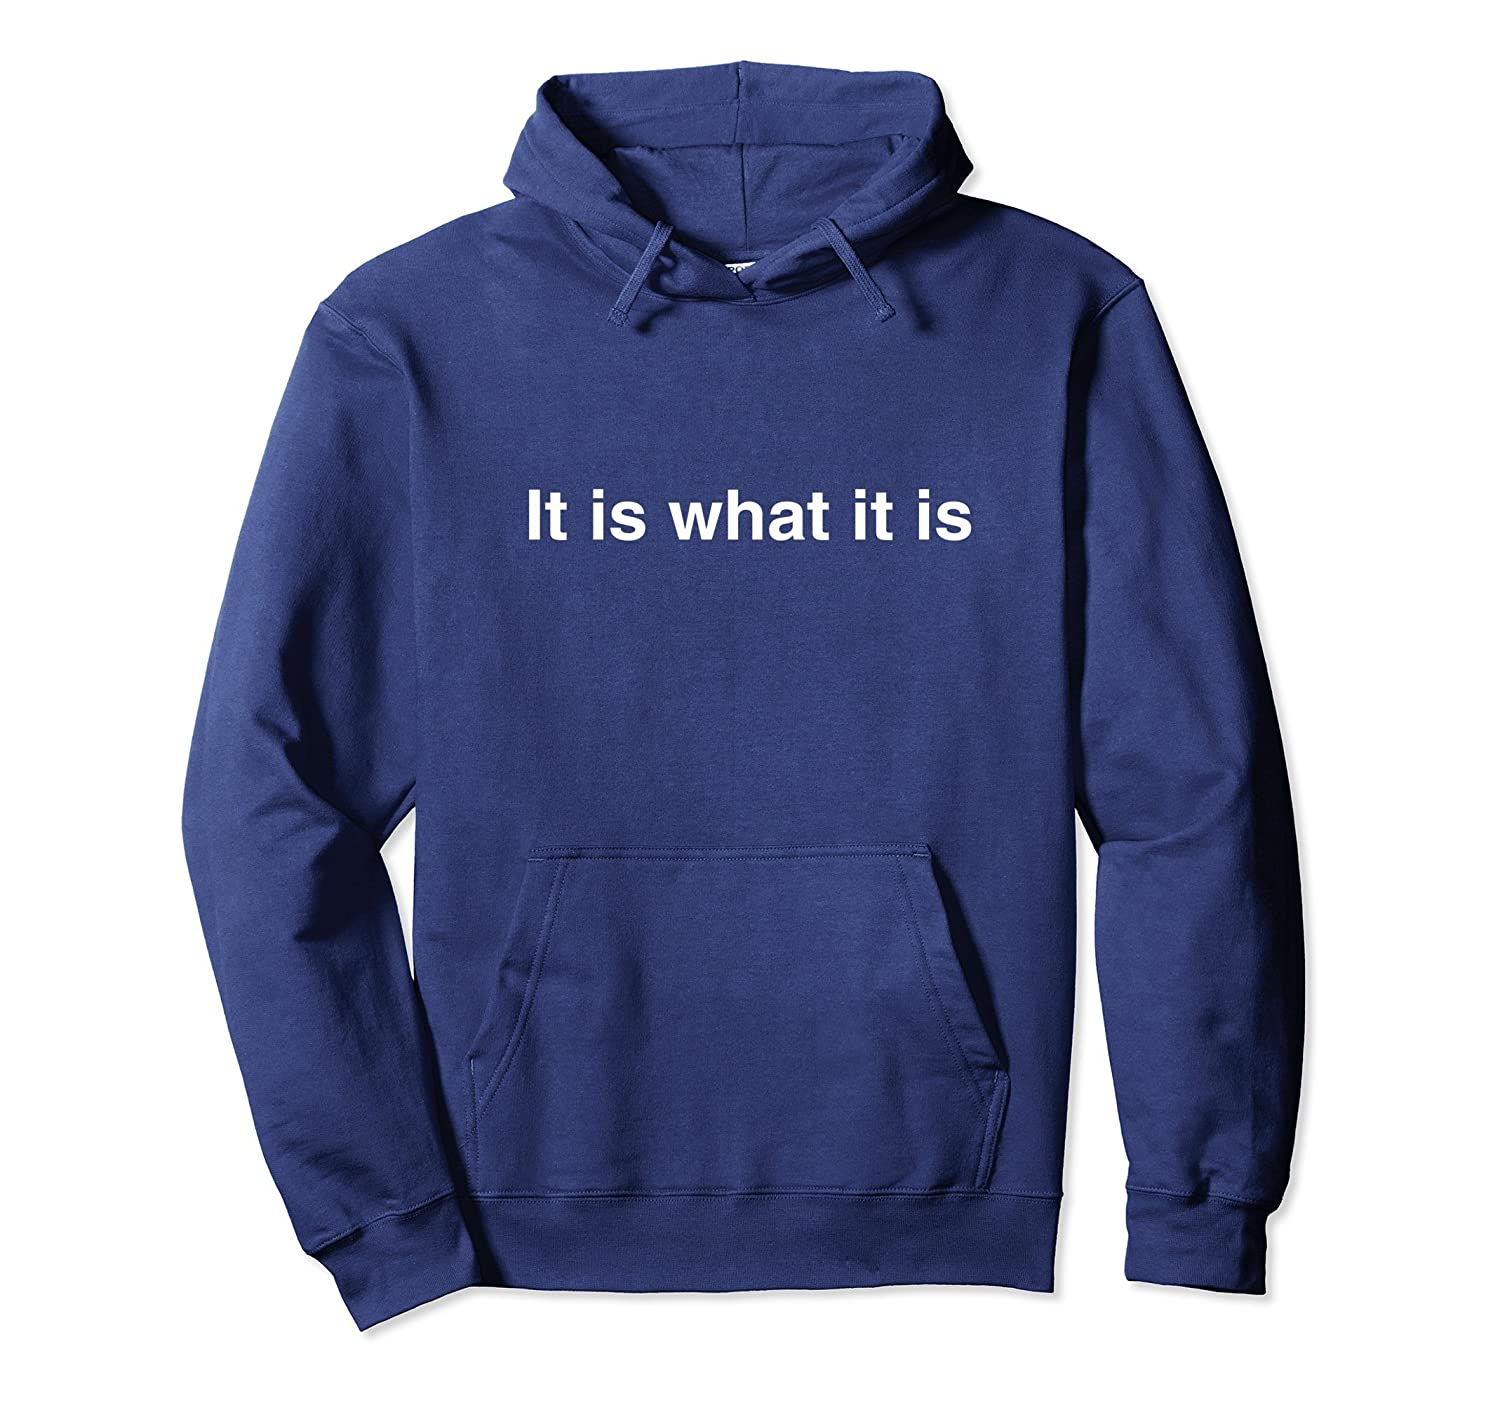 Hoodie - what it is What is different from hoodies, sweatshirts What to wear 70